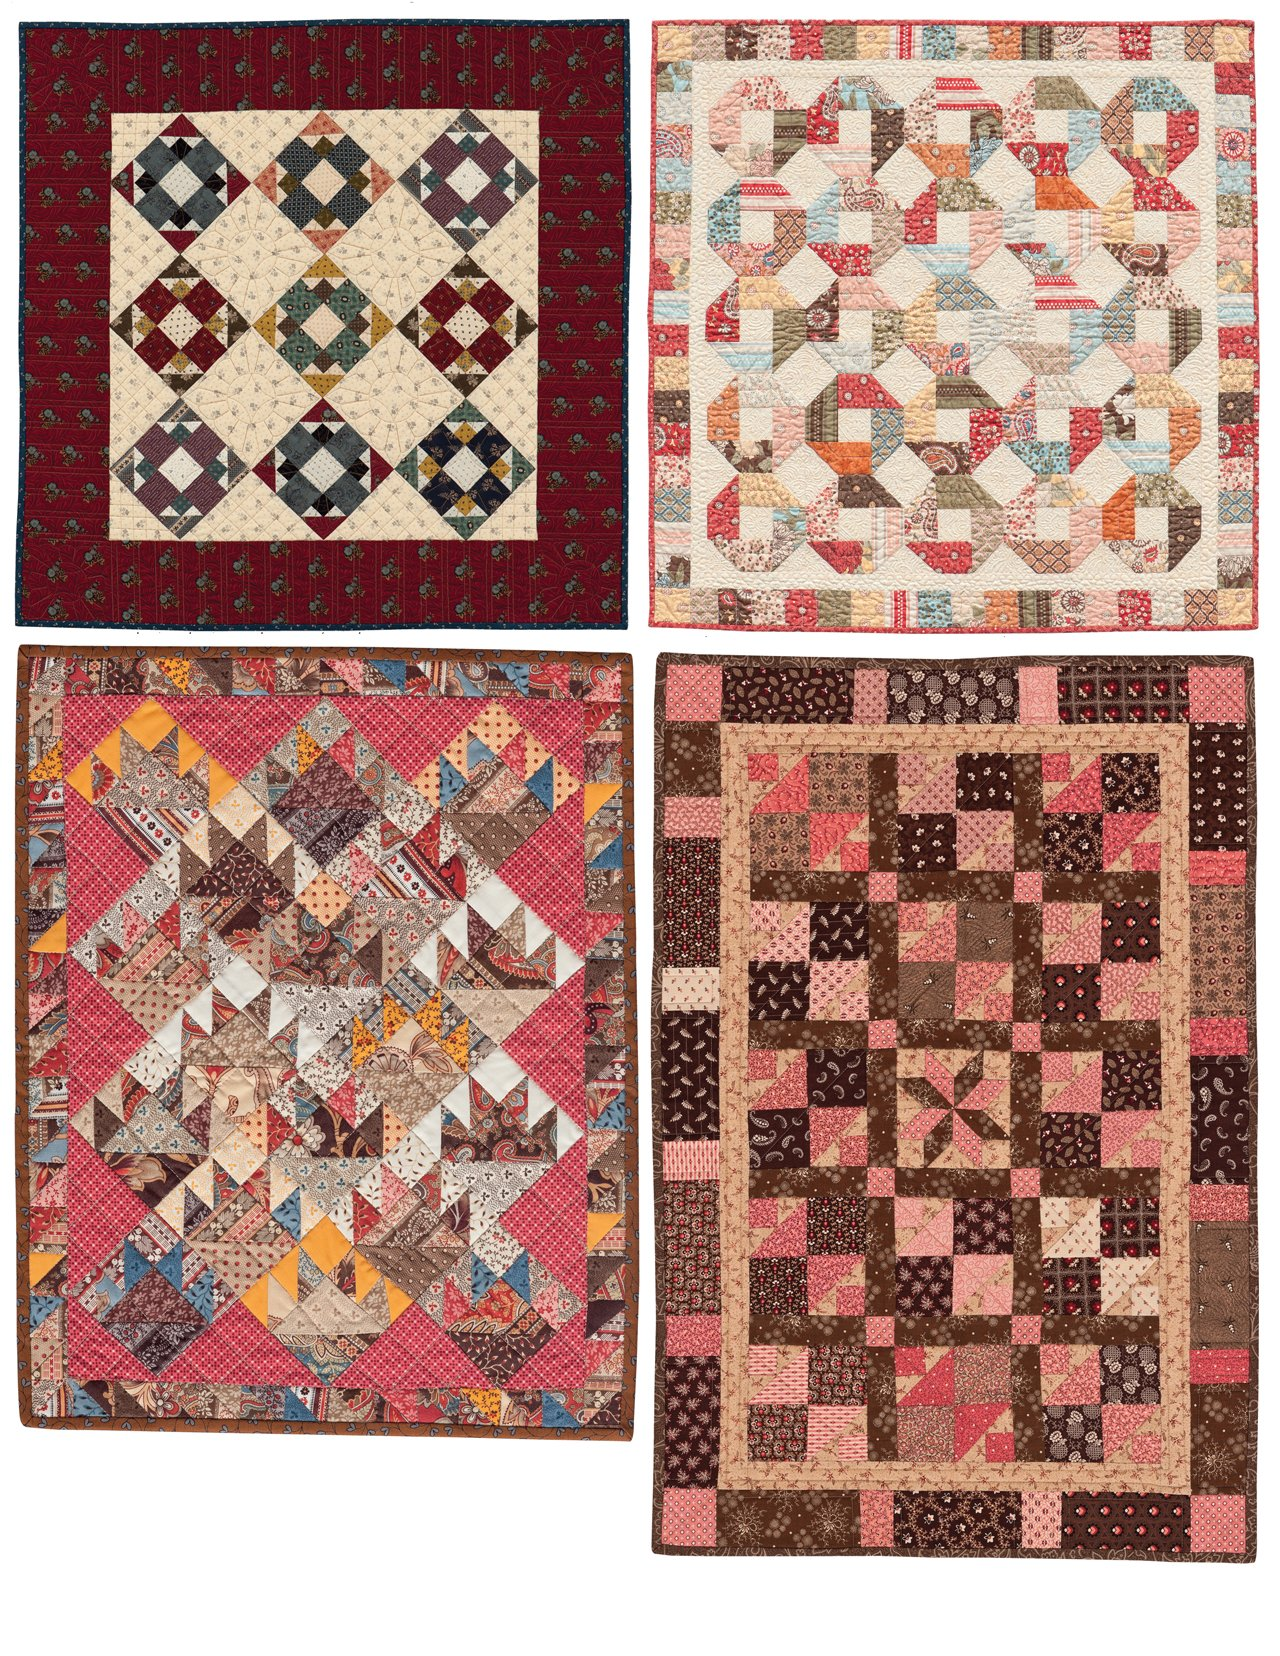 101 Fabulous Small Quilts (That Patchwork Place): Amazon.de: That Patchwork  Place: Fremdsprachige Bücher